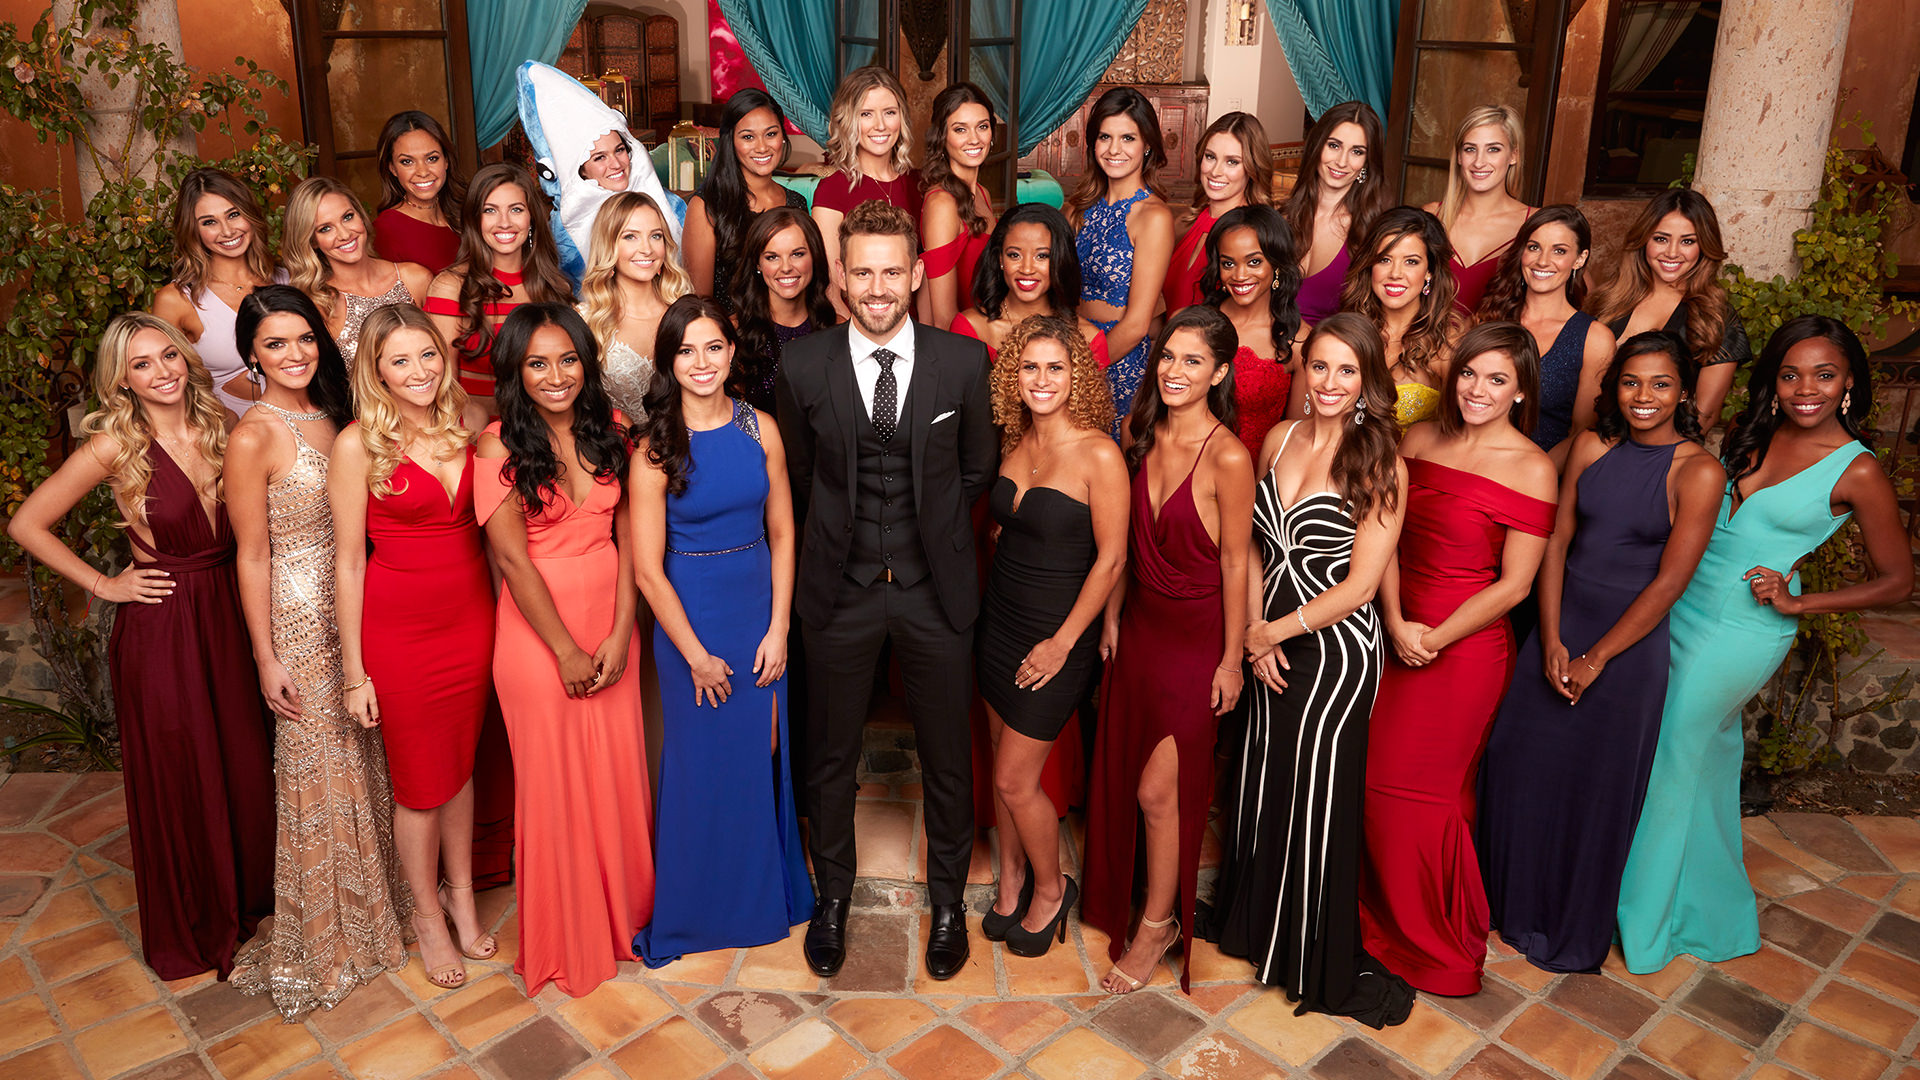 The Bachelor: The Women Tell All (S2)